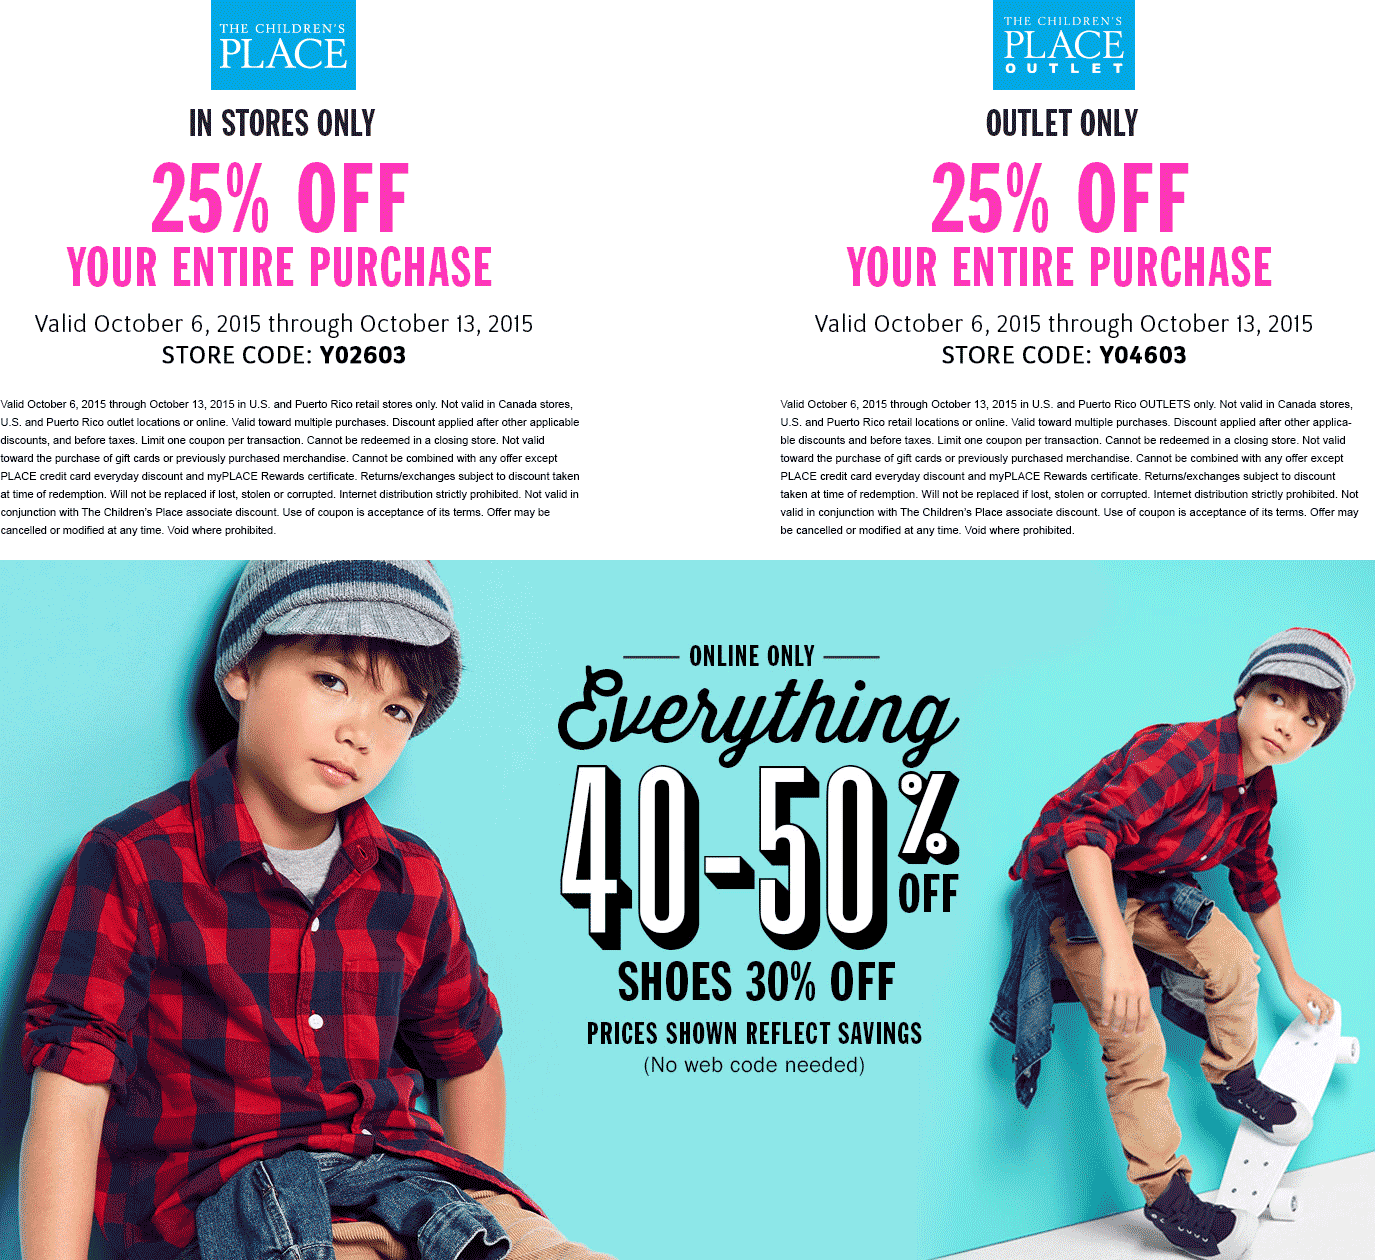 The Childrens Place Coupon March 2018 25% off at The Childrens Place & outlet locations, or 40-50% everything online